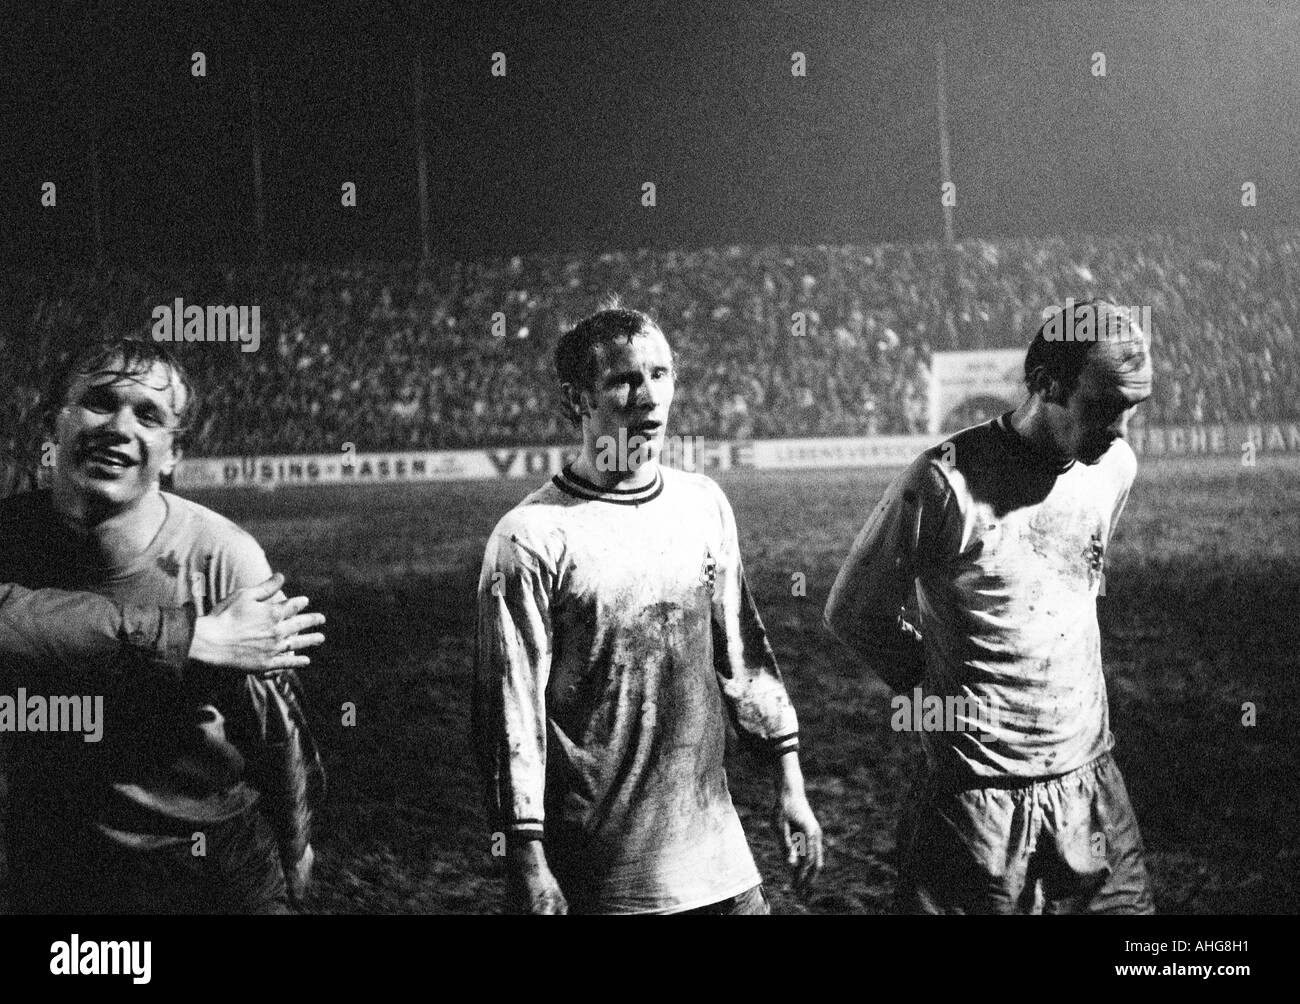 football, Bundesliga, 1969/1970, Stadium at the Hafenstrasse in Essen, Rot-Weiss Essen versus Borussia Moenchengladbach Stock Photo